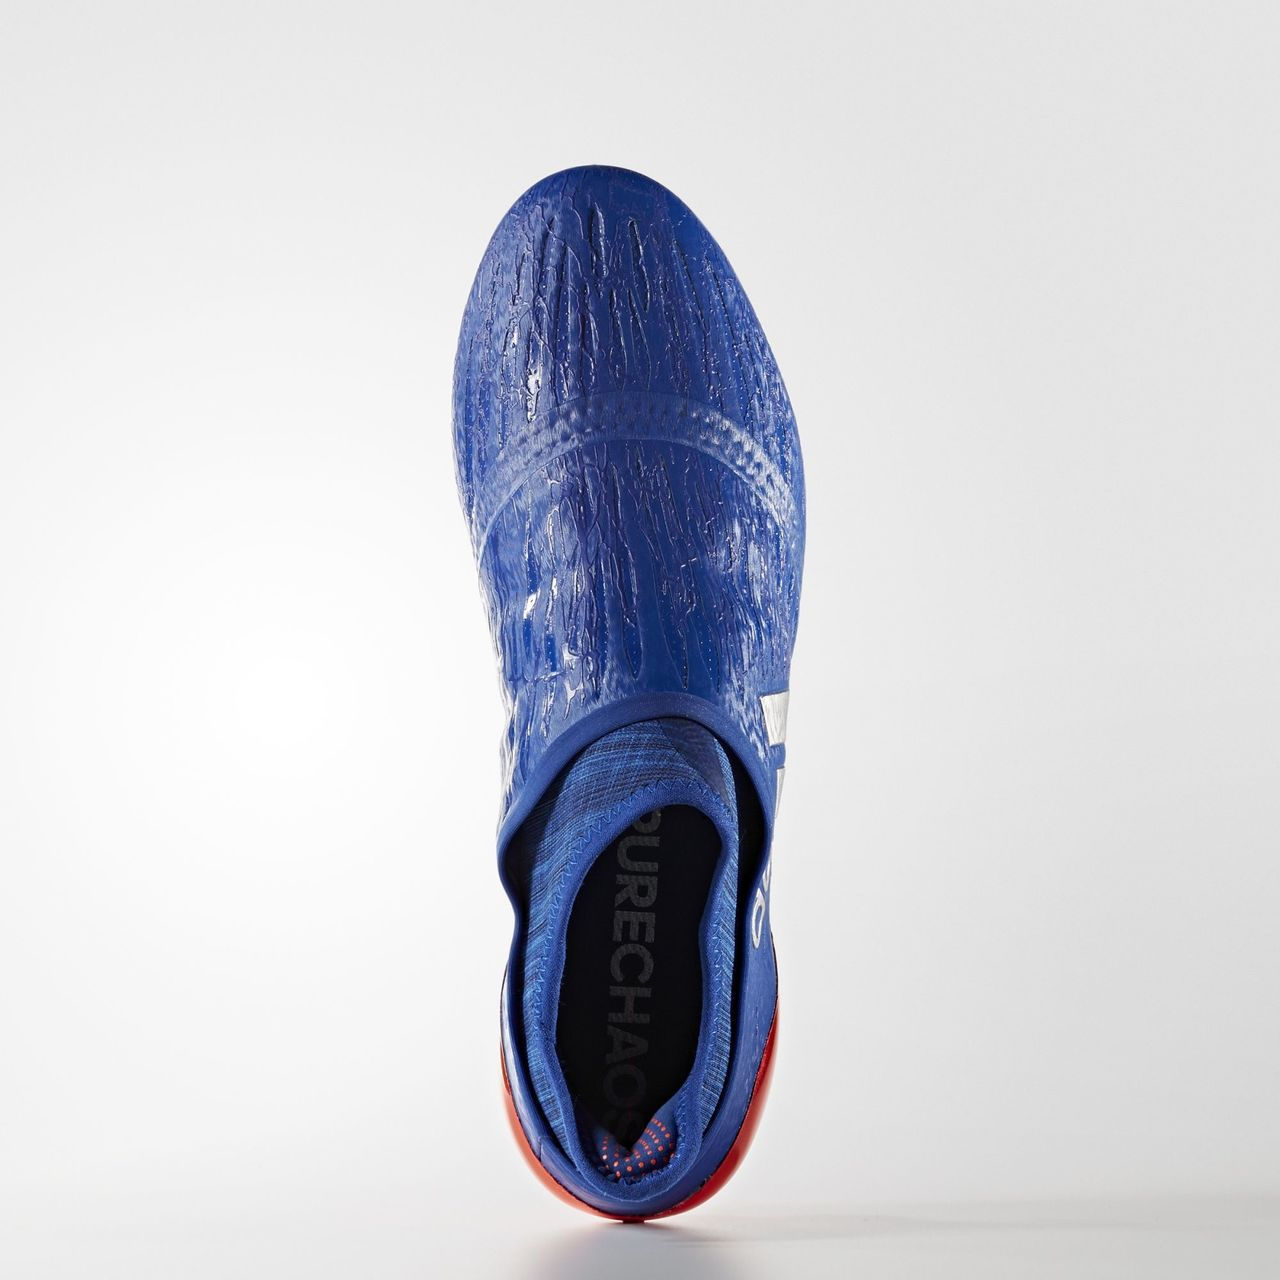 c7d713a9d ... Click to enlarge image  adidas_x_16_purechaos_firm_ground_boots_collegiate_royal_solar_red_solar_red_b.jpg  ...